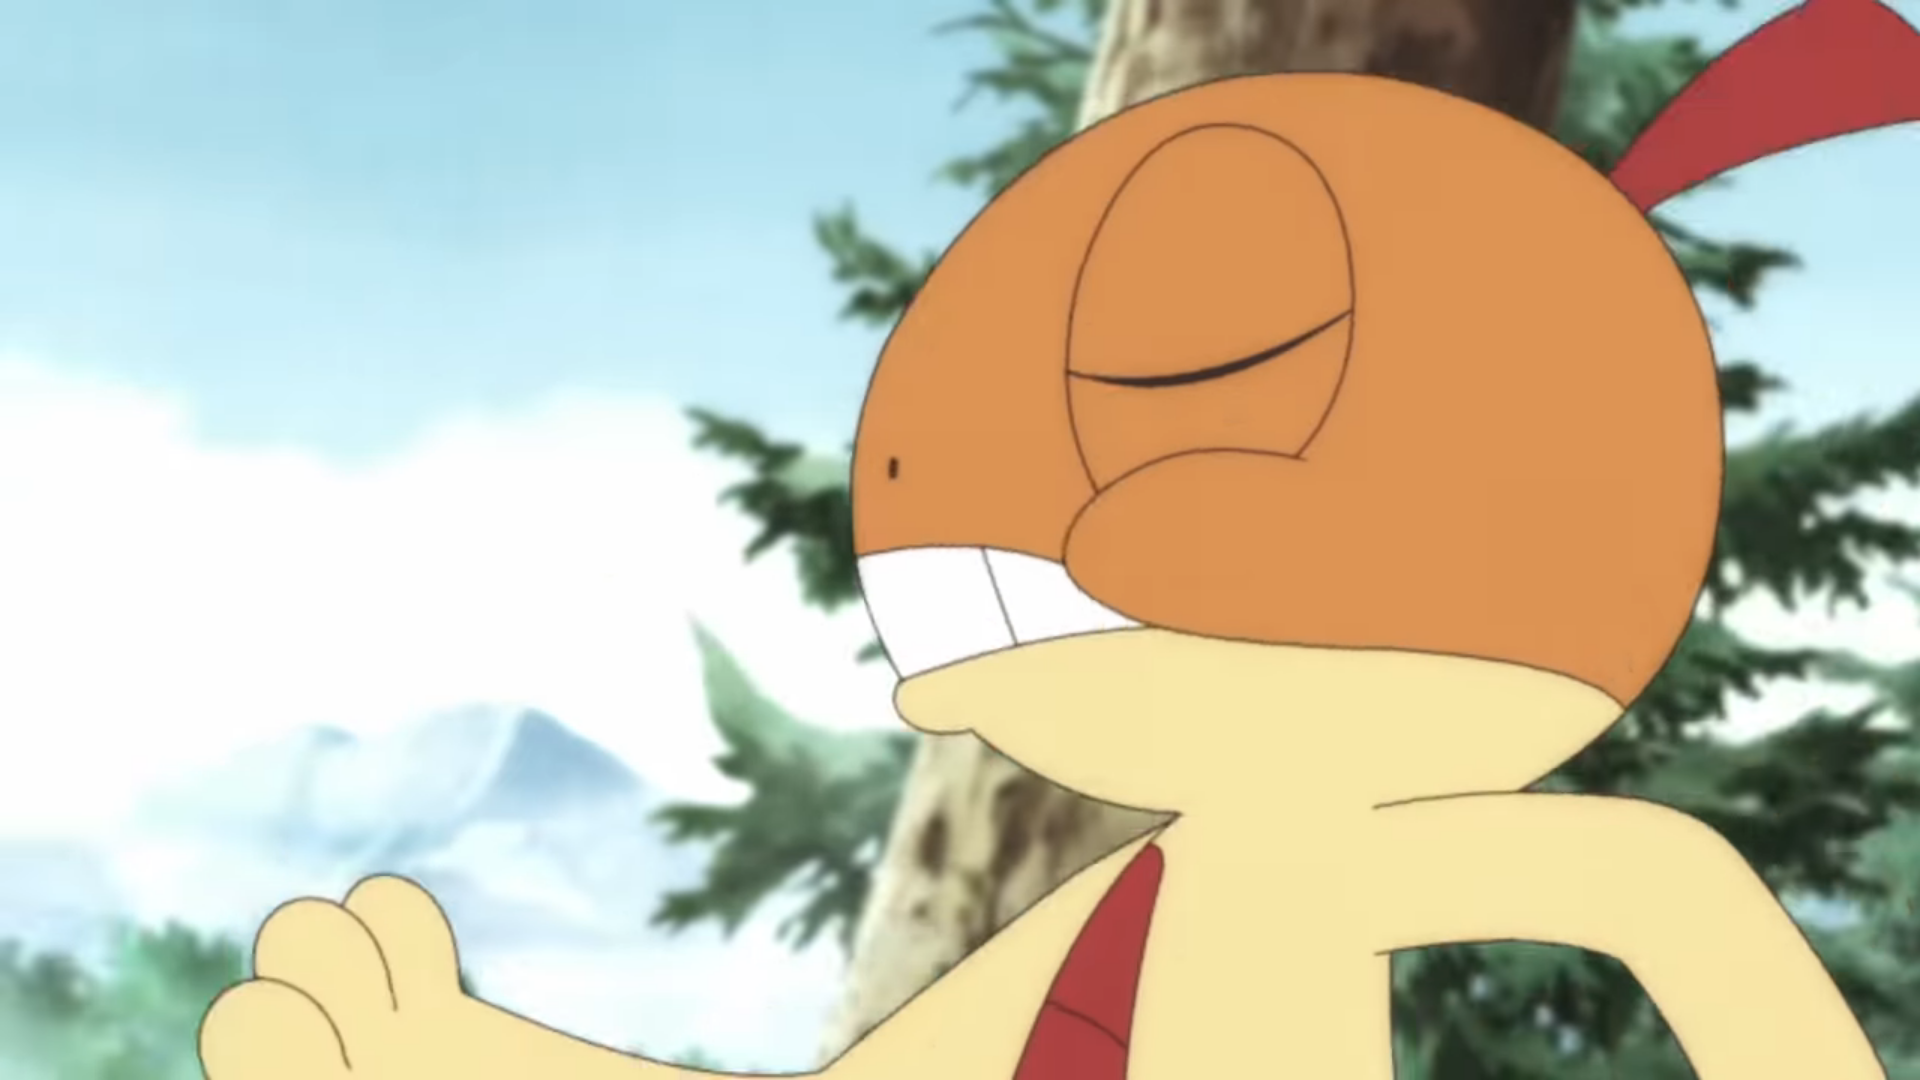 New Pokémon animation is like a Looney Tunes short with Scraggy and Mimikyu